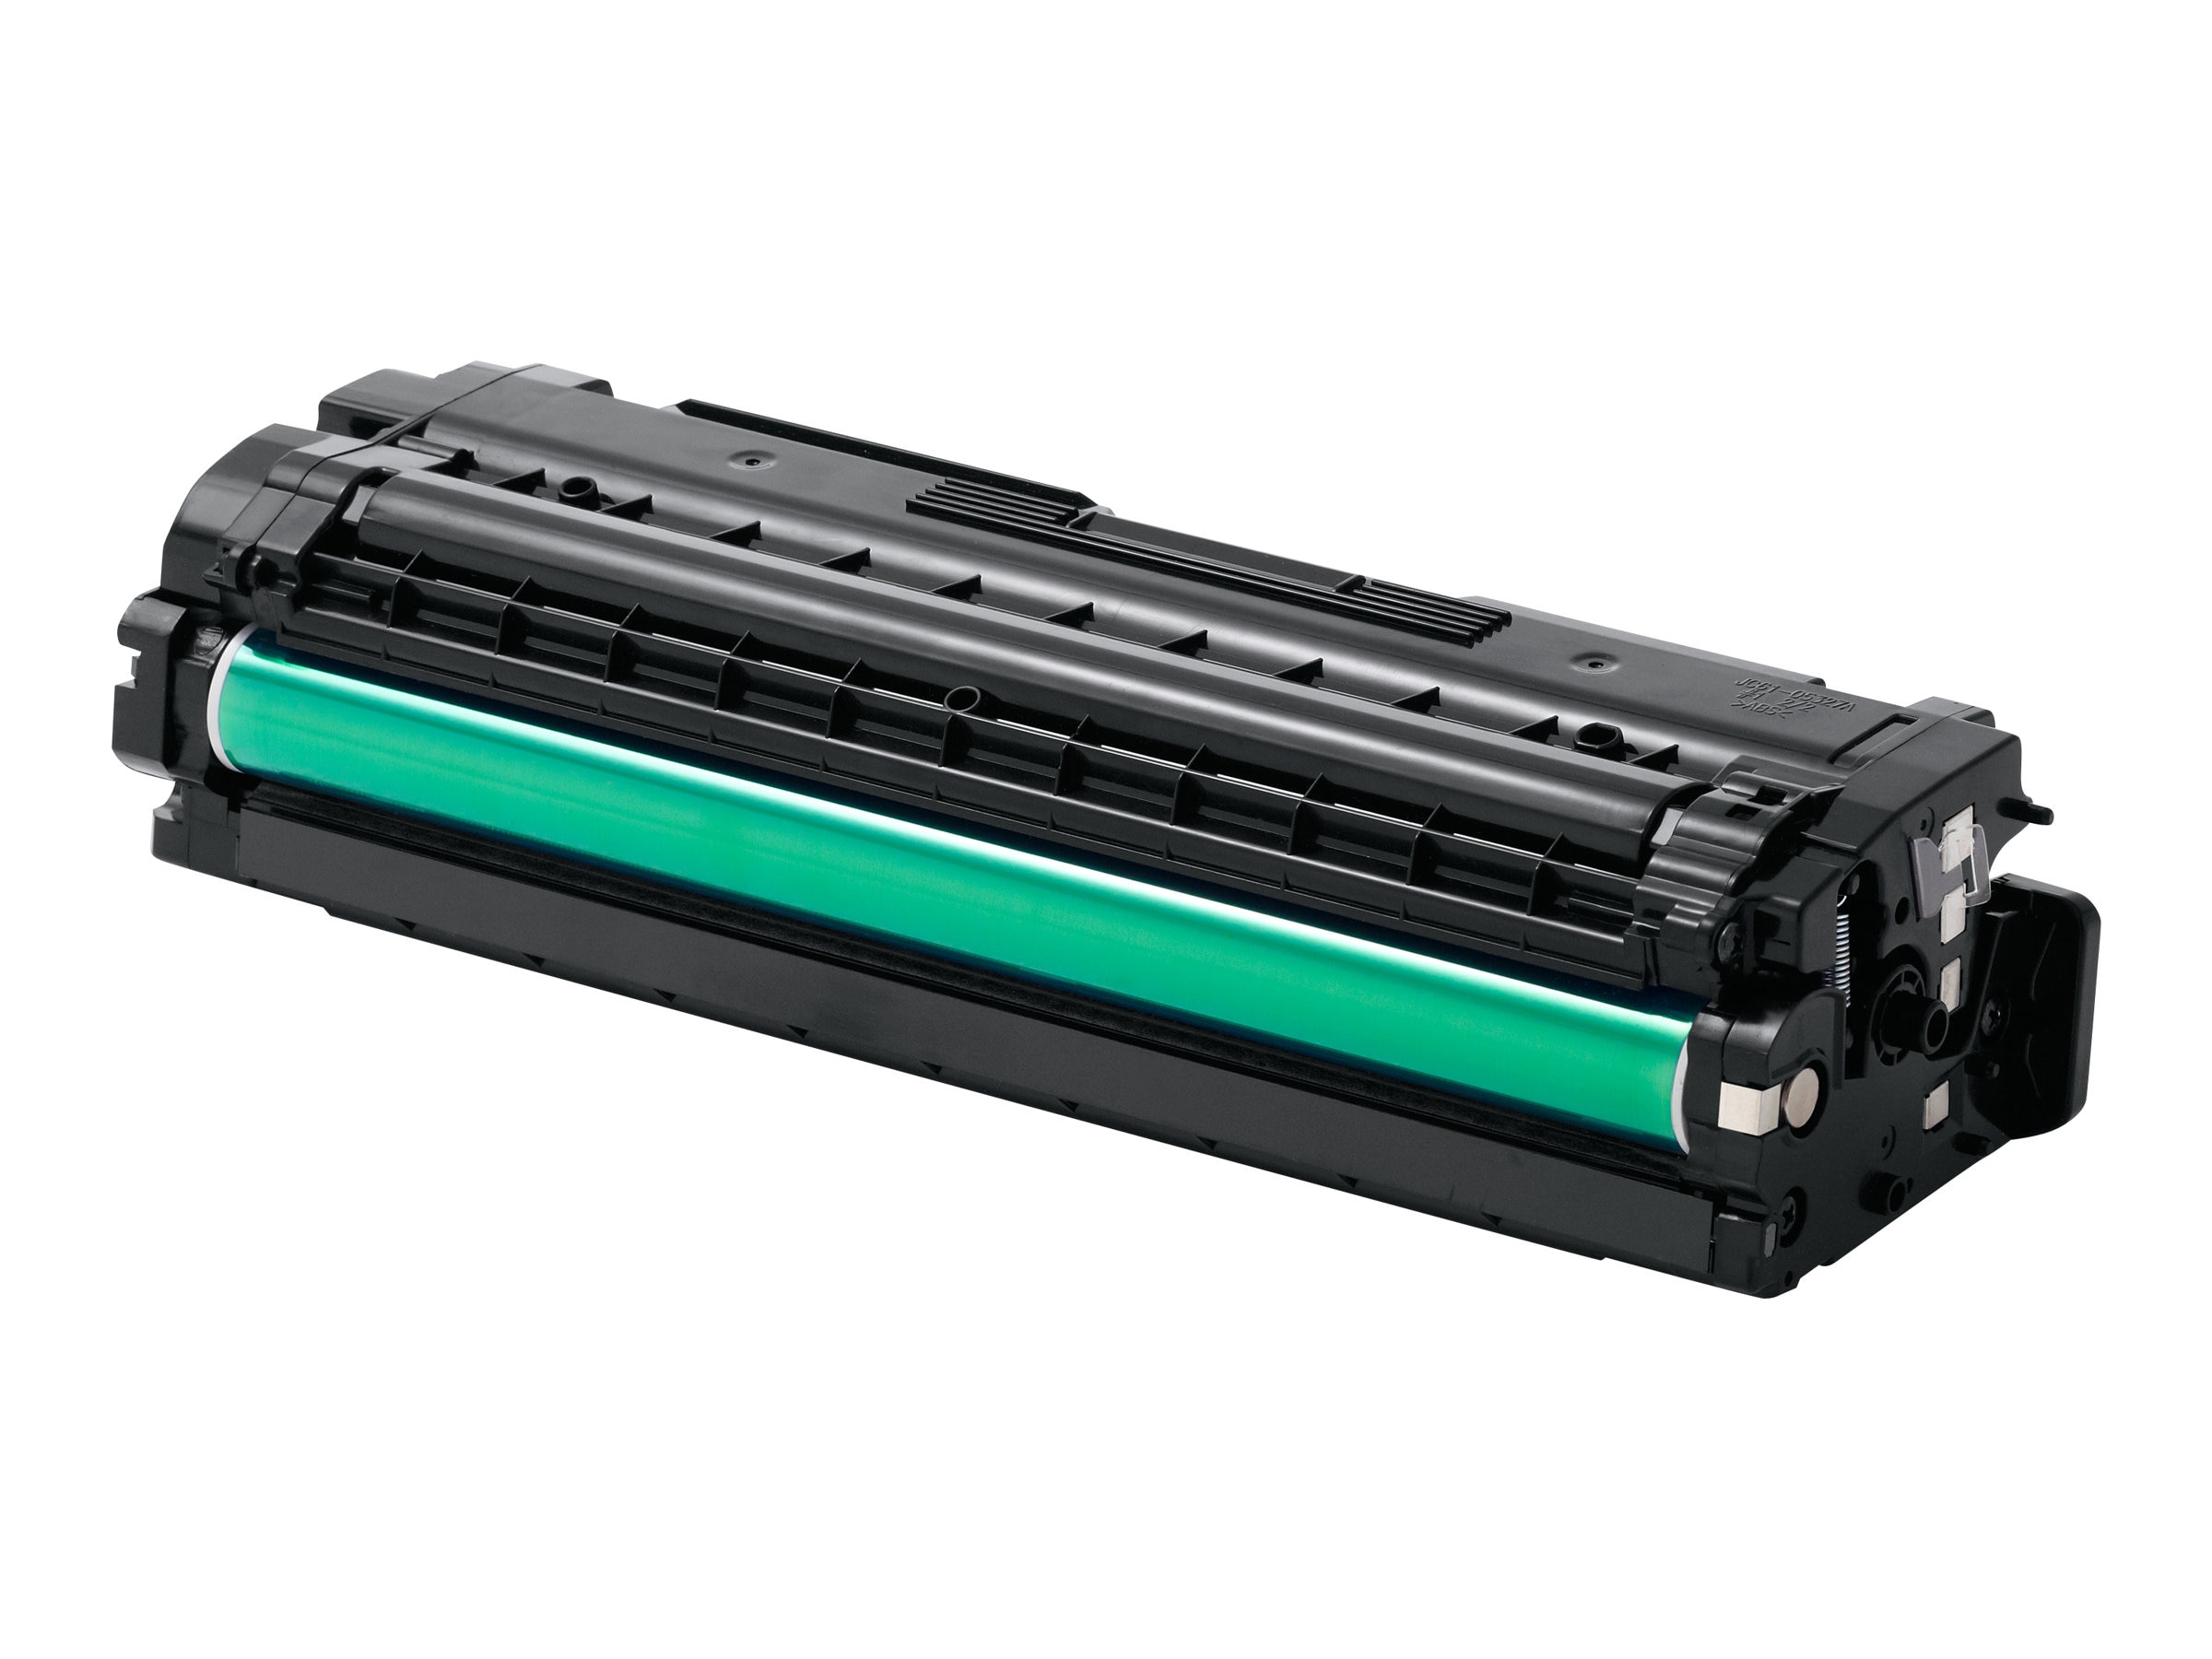 Samsung Magenta Toner Cartridge for CLP-680ND Color Laser Printer & CLX-6260FW & CLX-6260FD Color MFPs